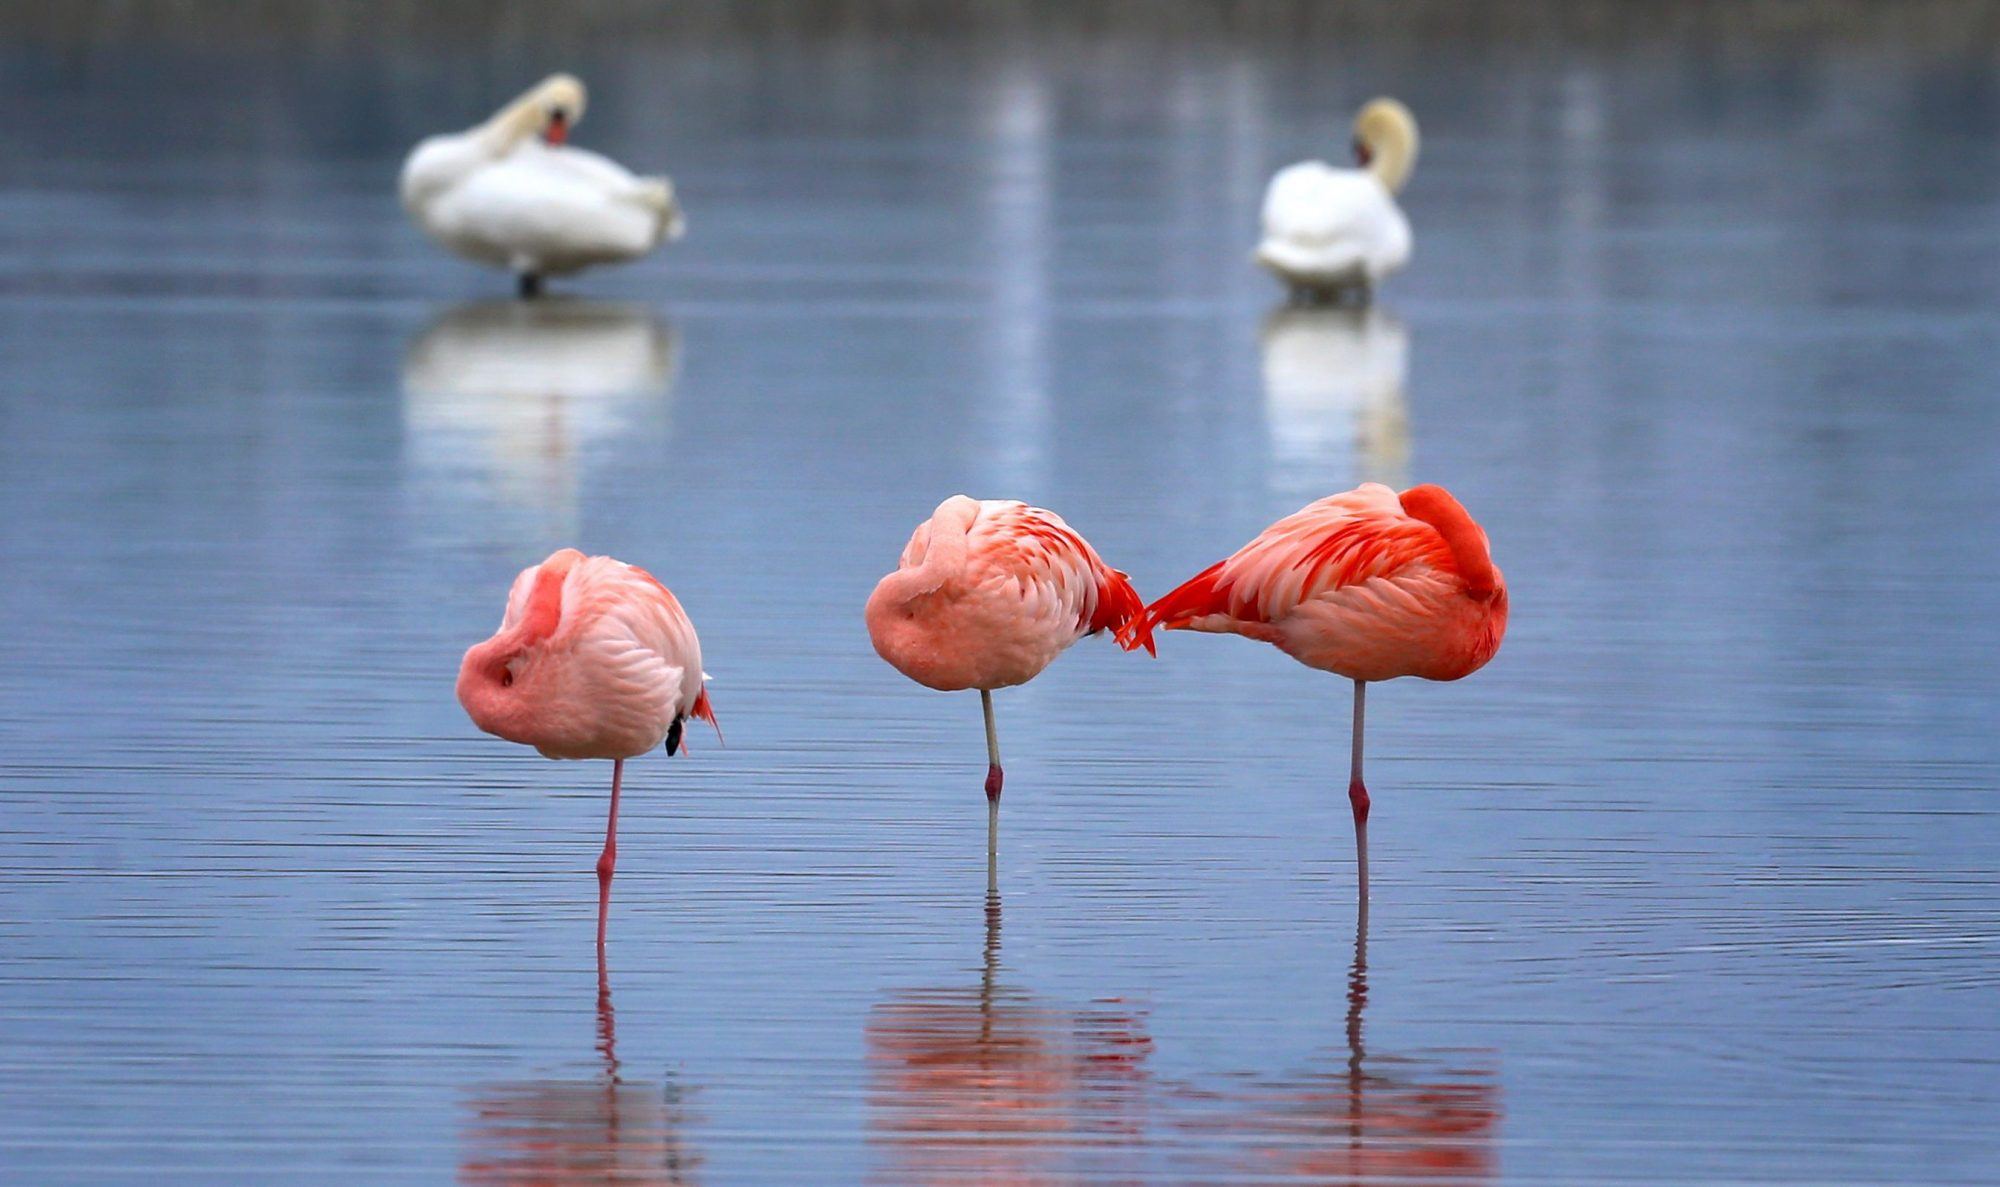 GERMANY-ANIMALS-FLAMINGO